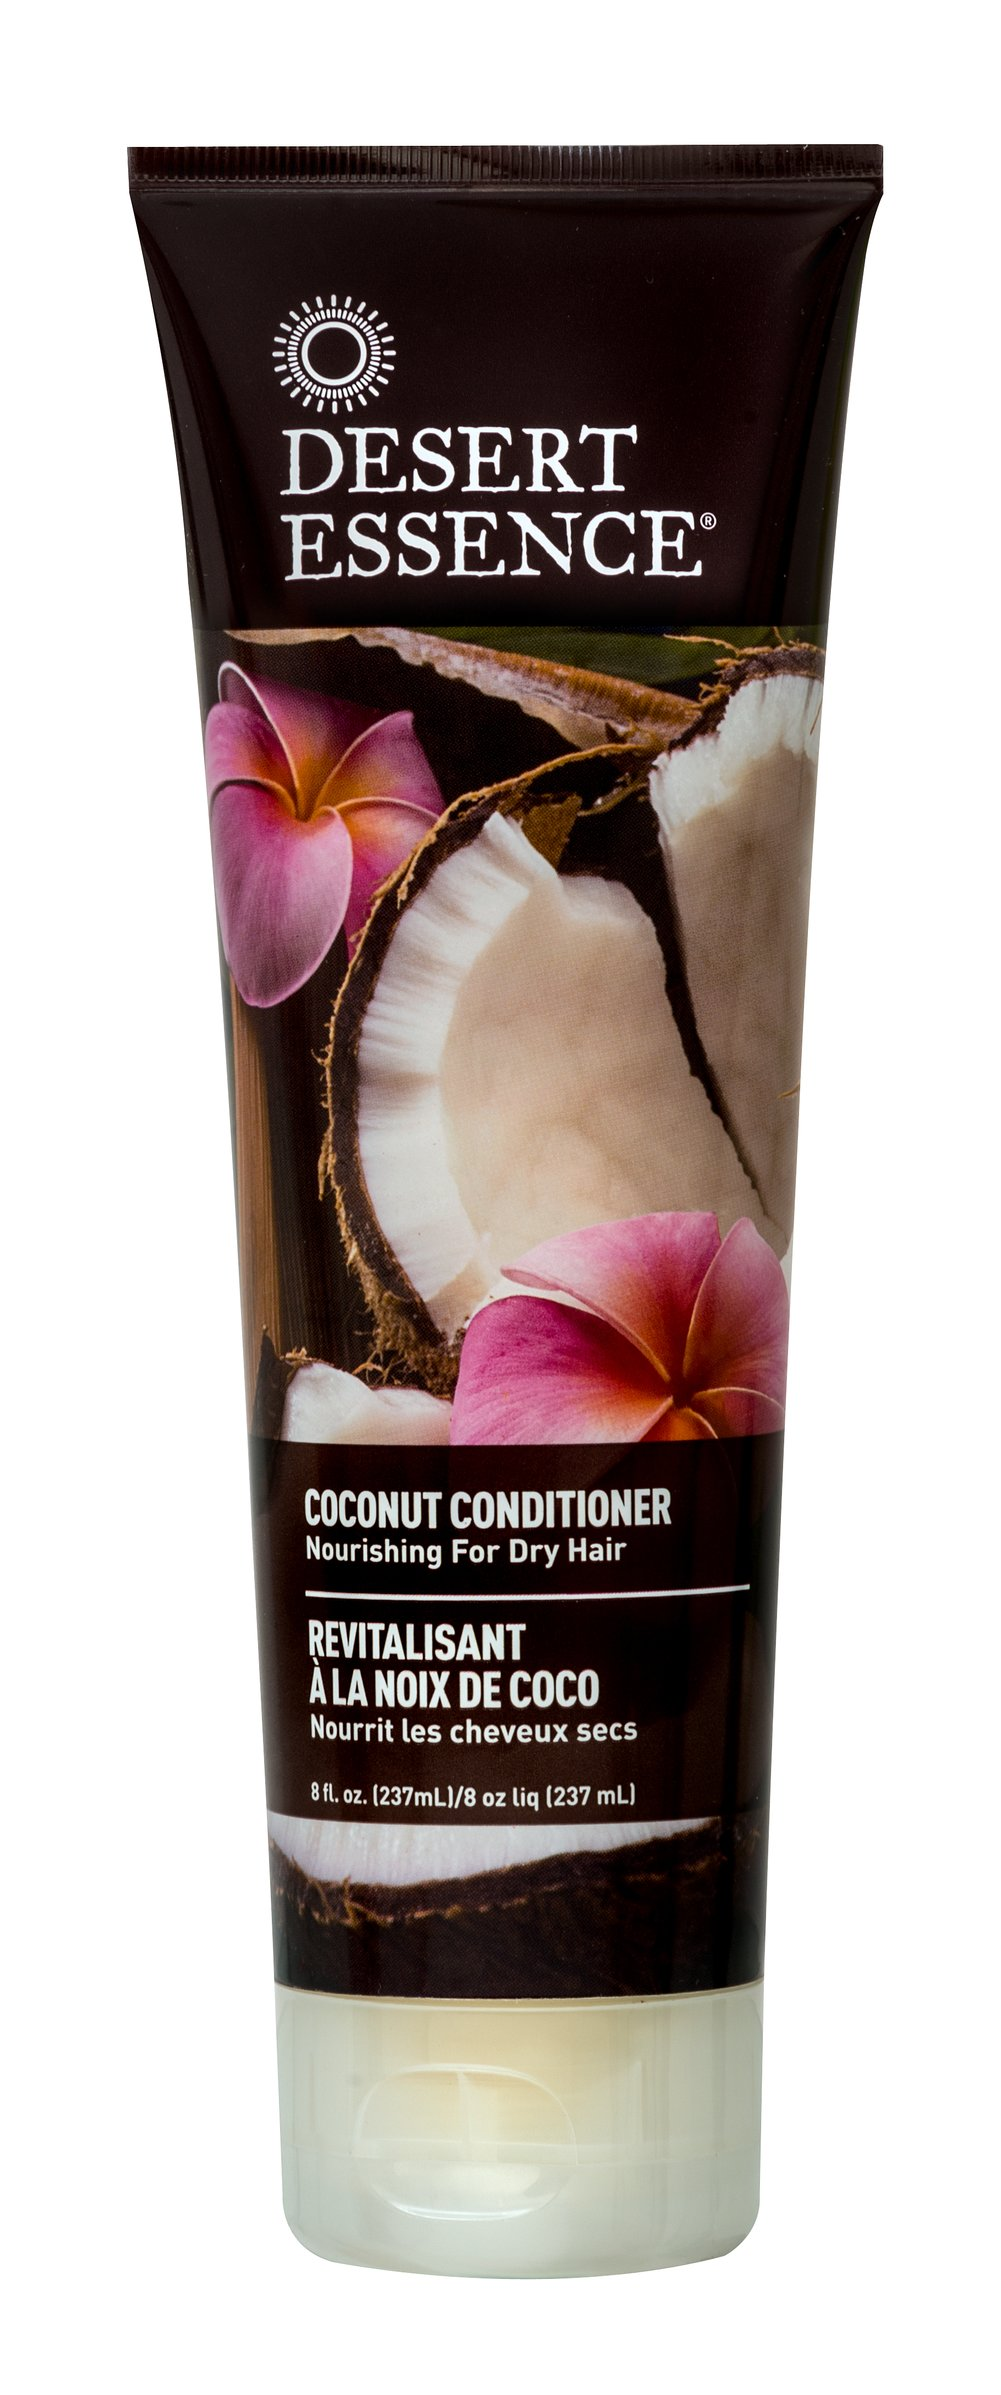 Desert Essence® Coconut Conditioner  8 fl oz Conditioner  $5.89